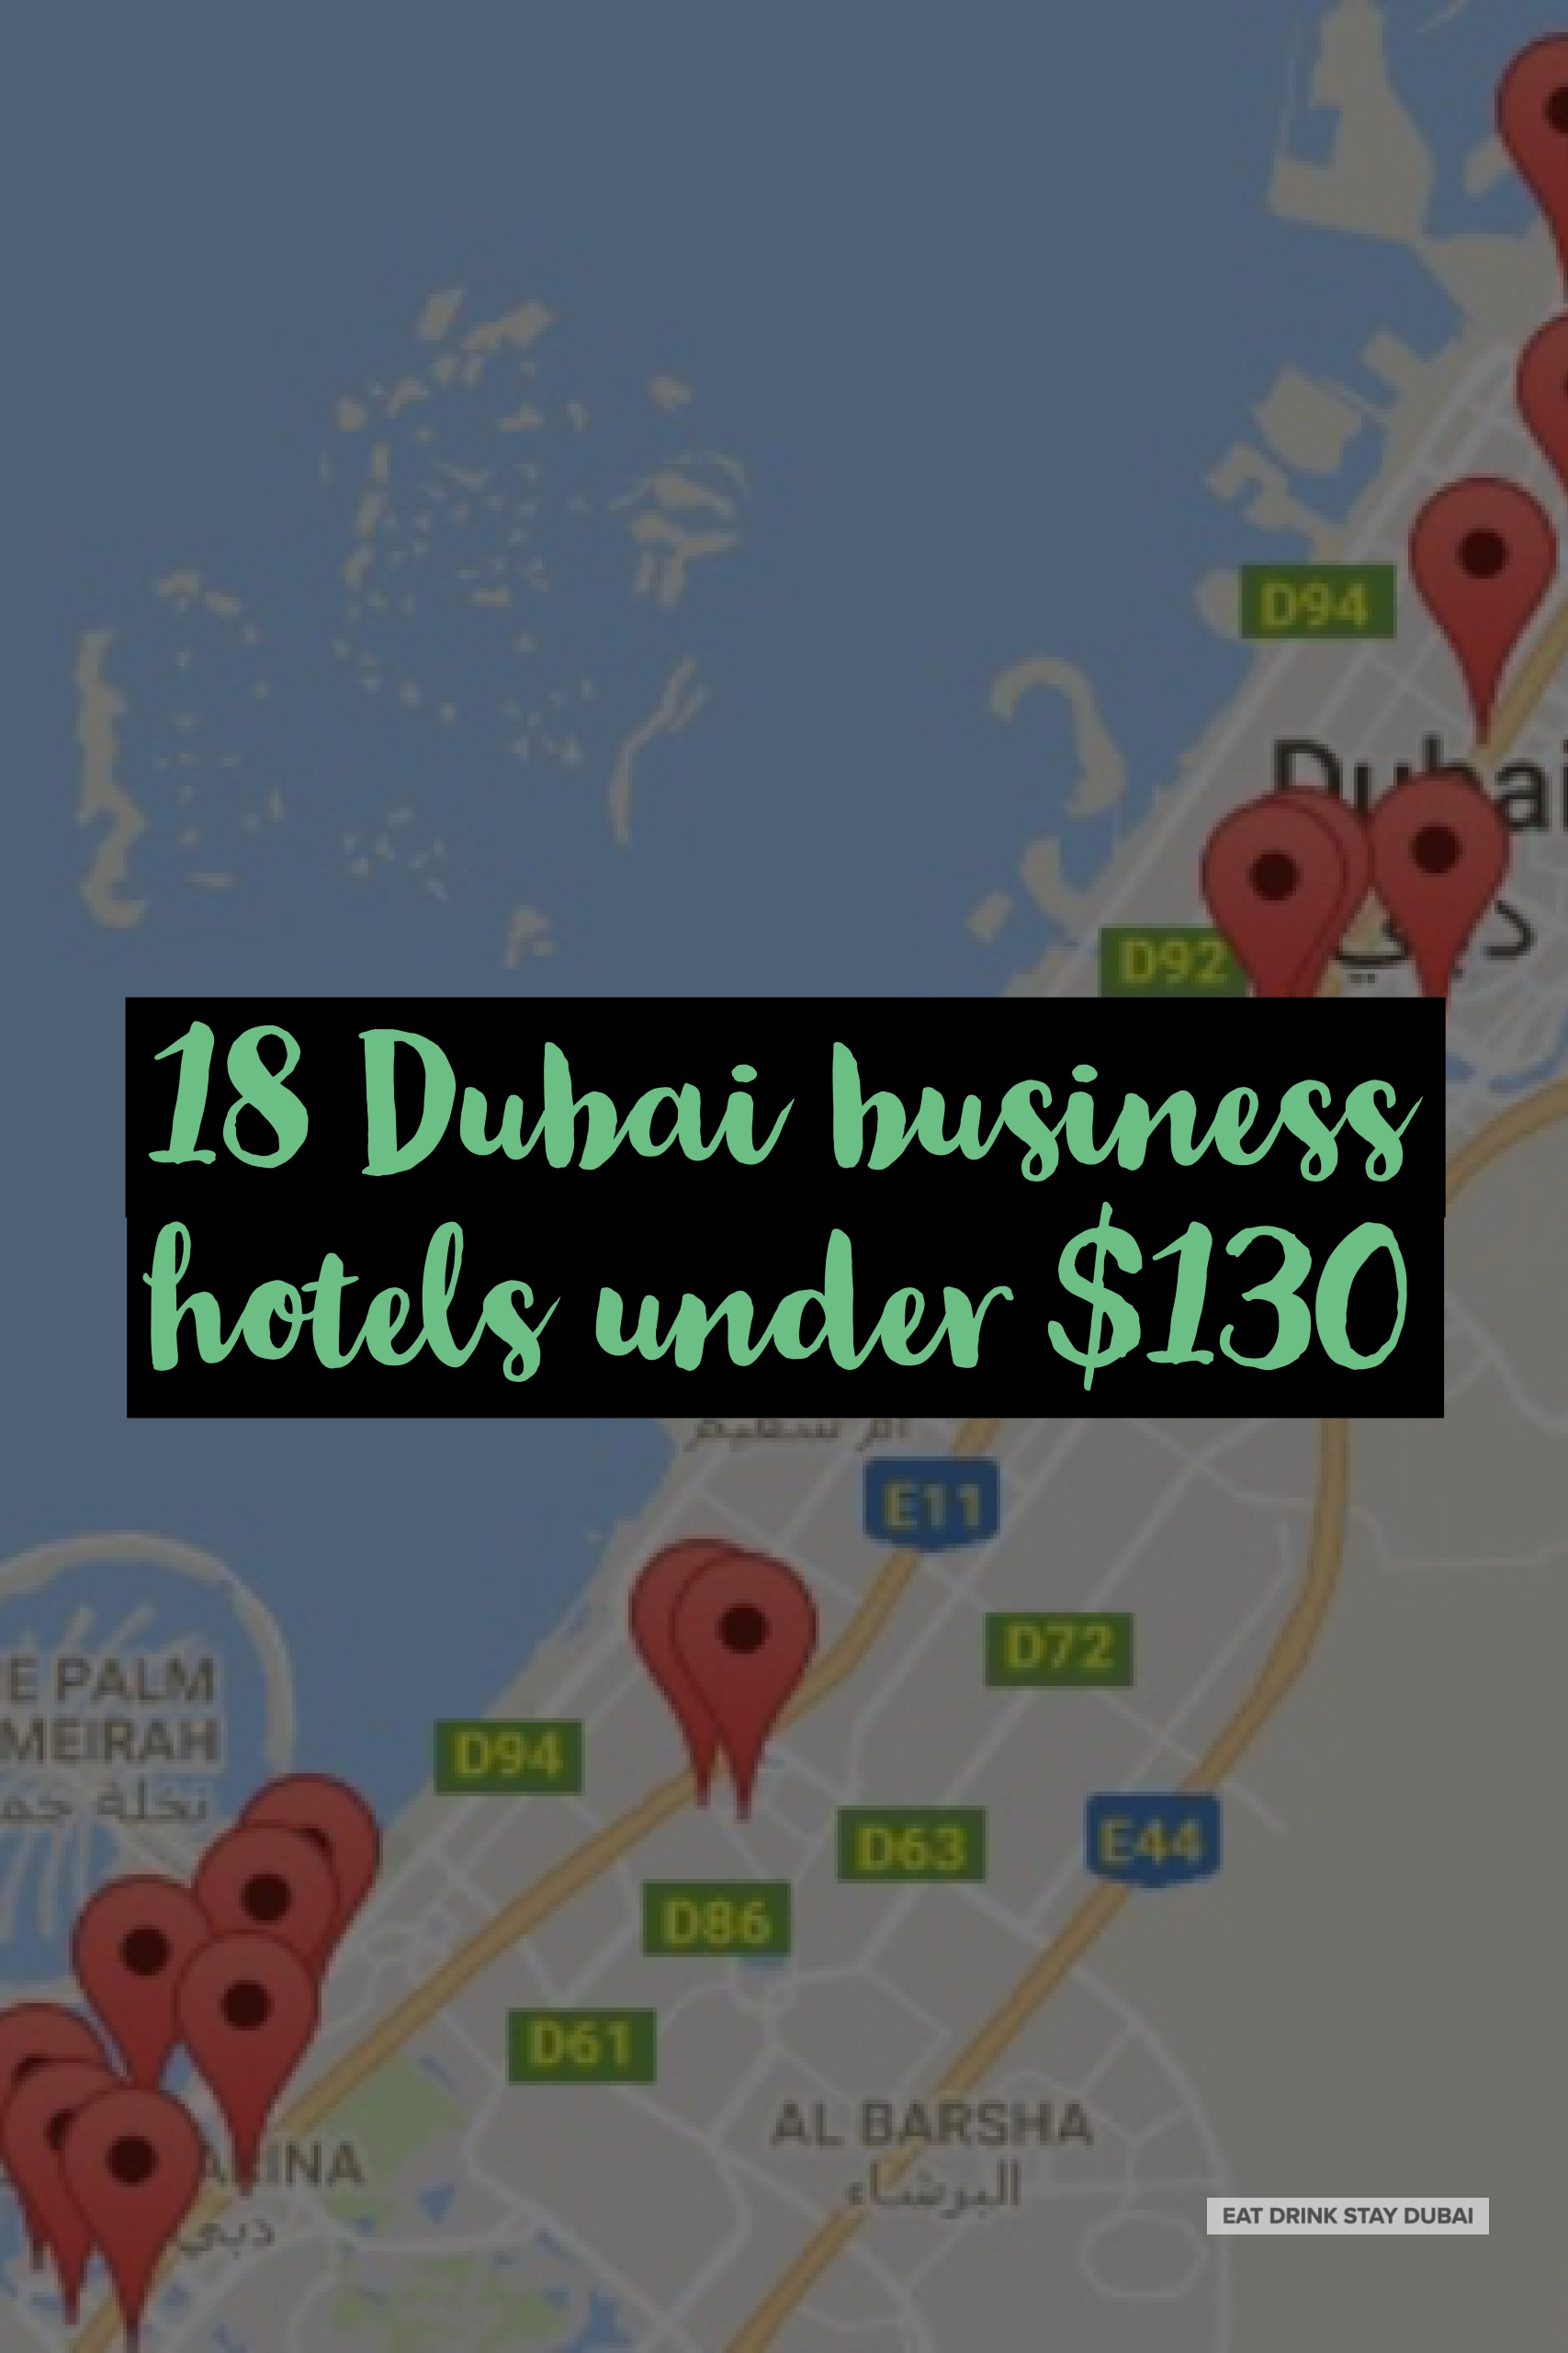 Business Hotels Dubai 18 under $130 map